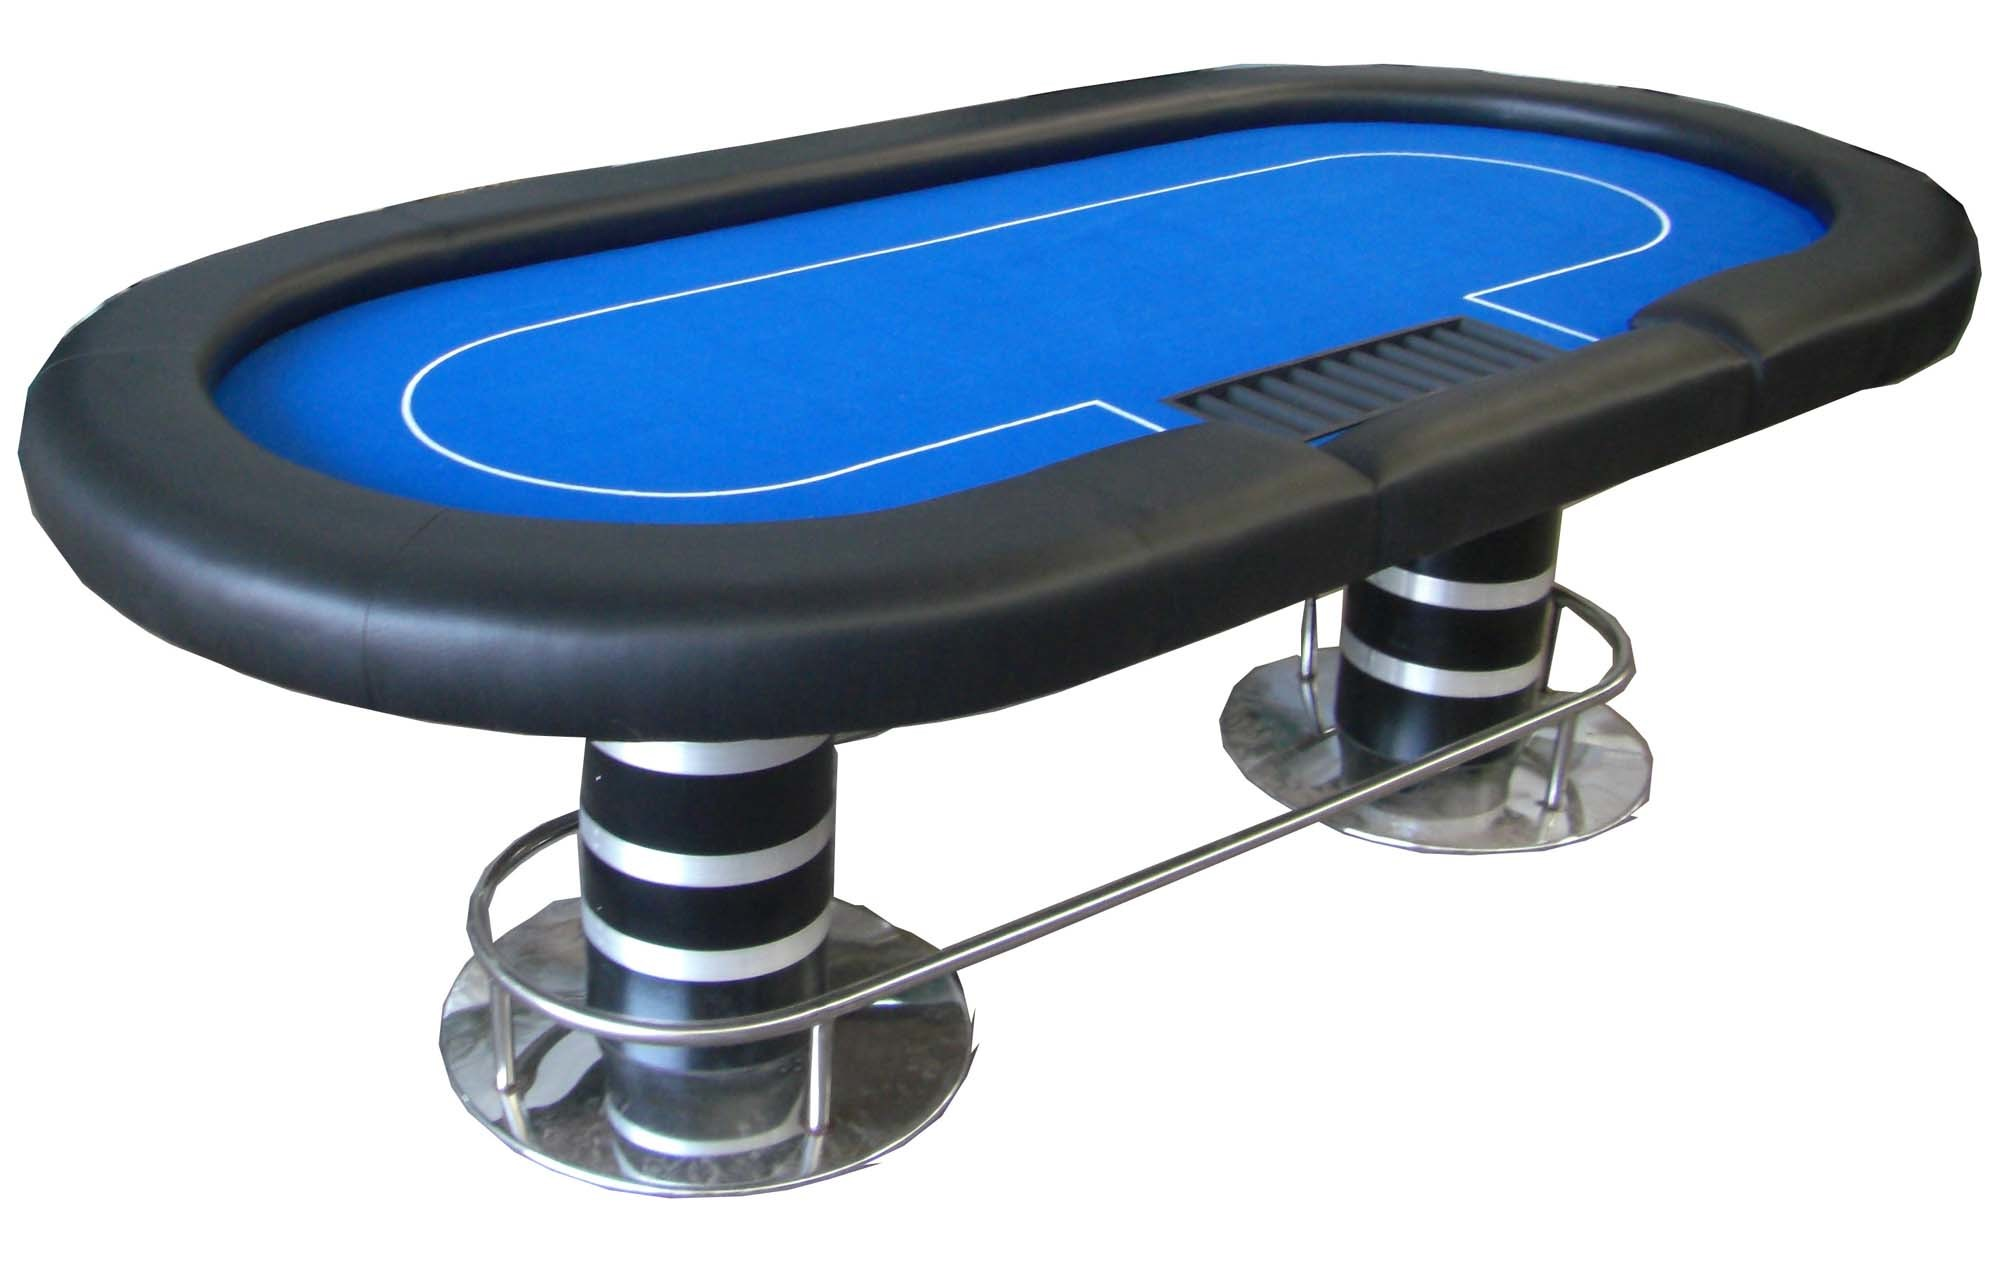 China poker table aquapoker blue t05a china poker for 10 player poker table